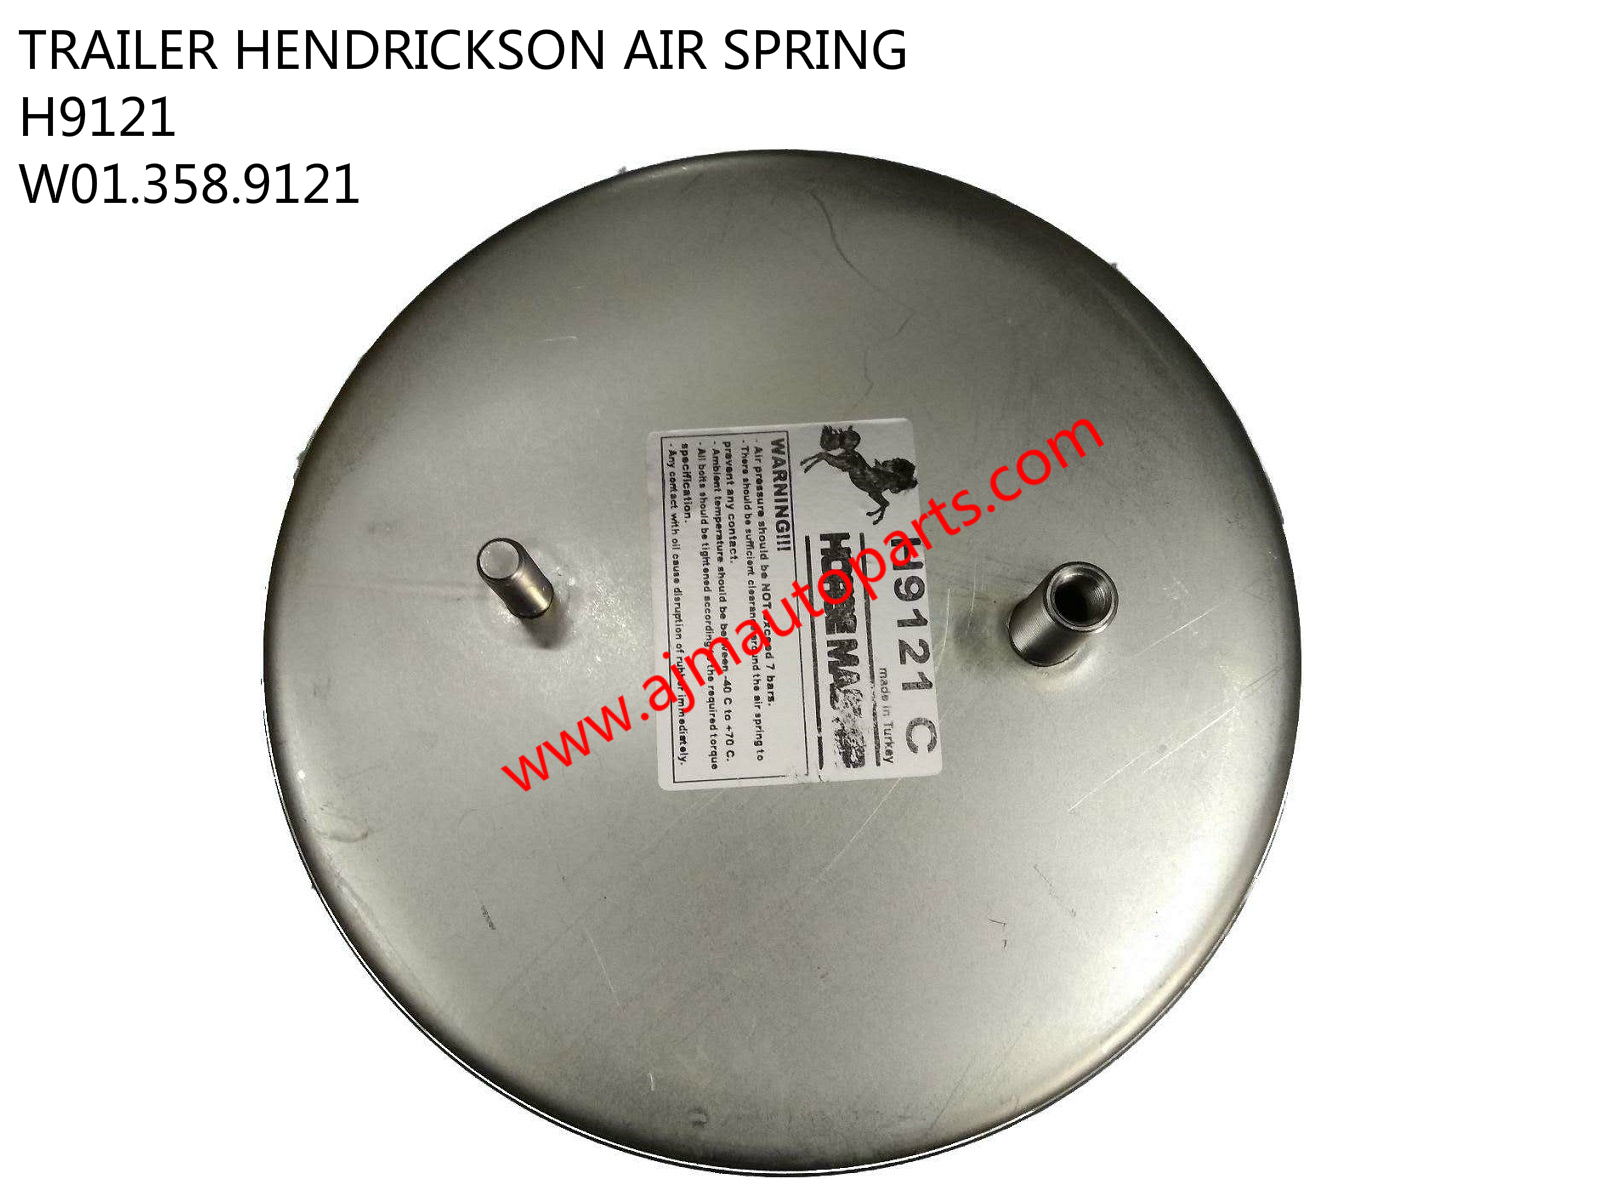 TRAILER HENDRICKSON AIR SPRING-H9121